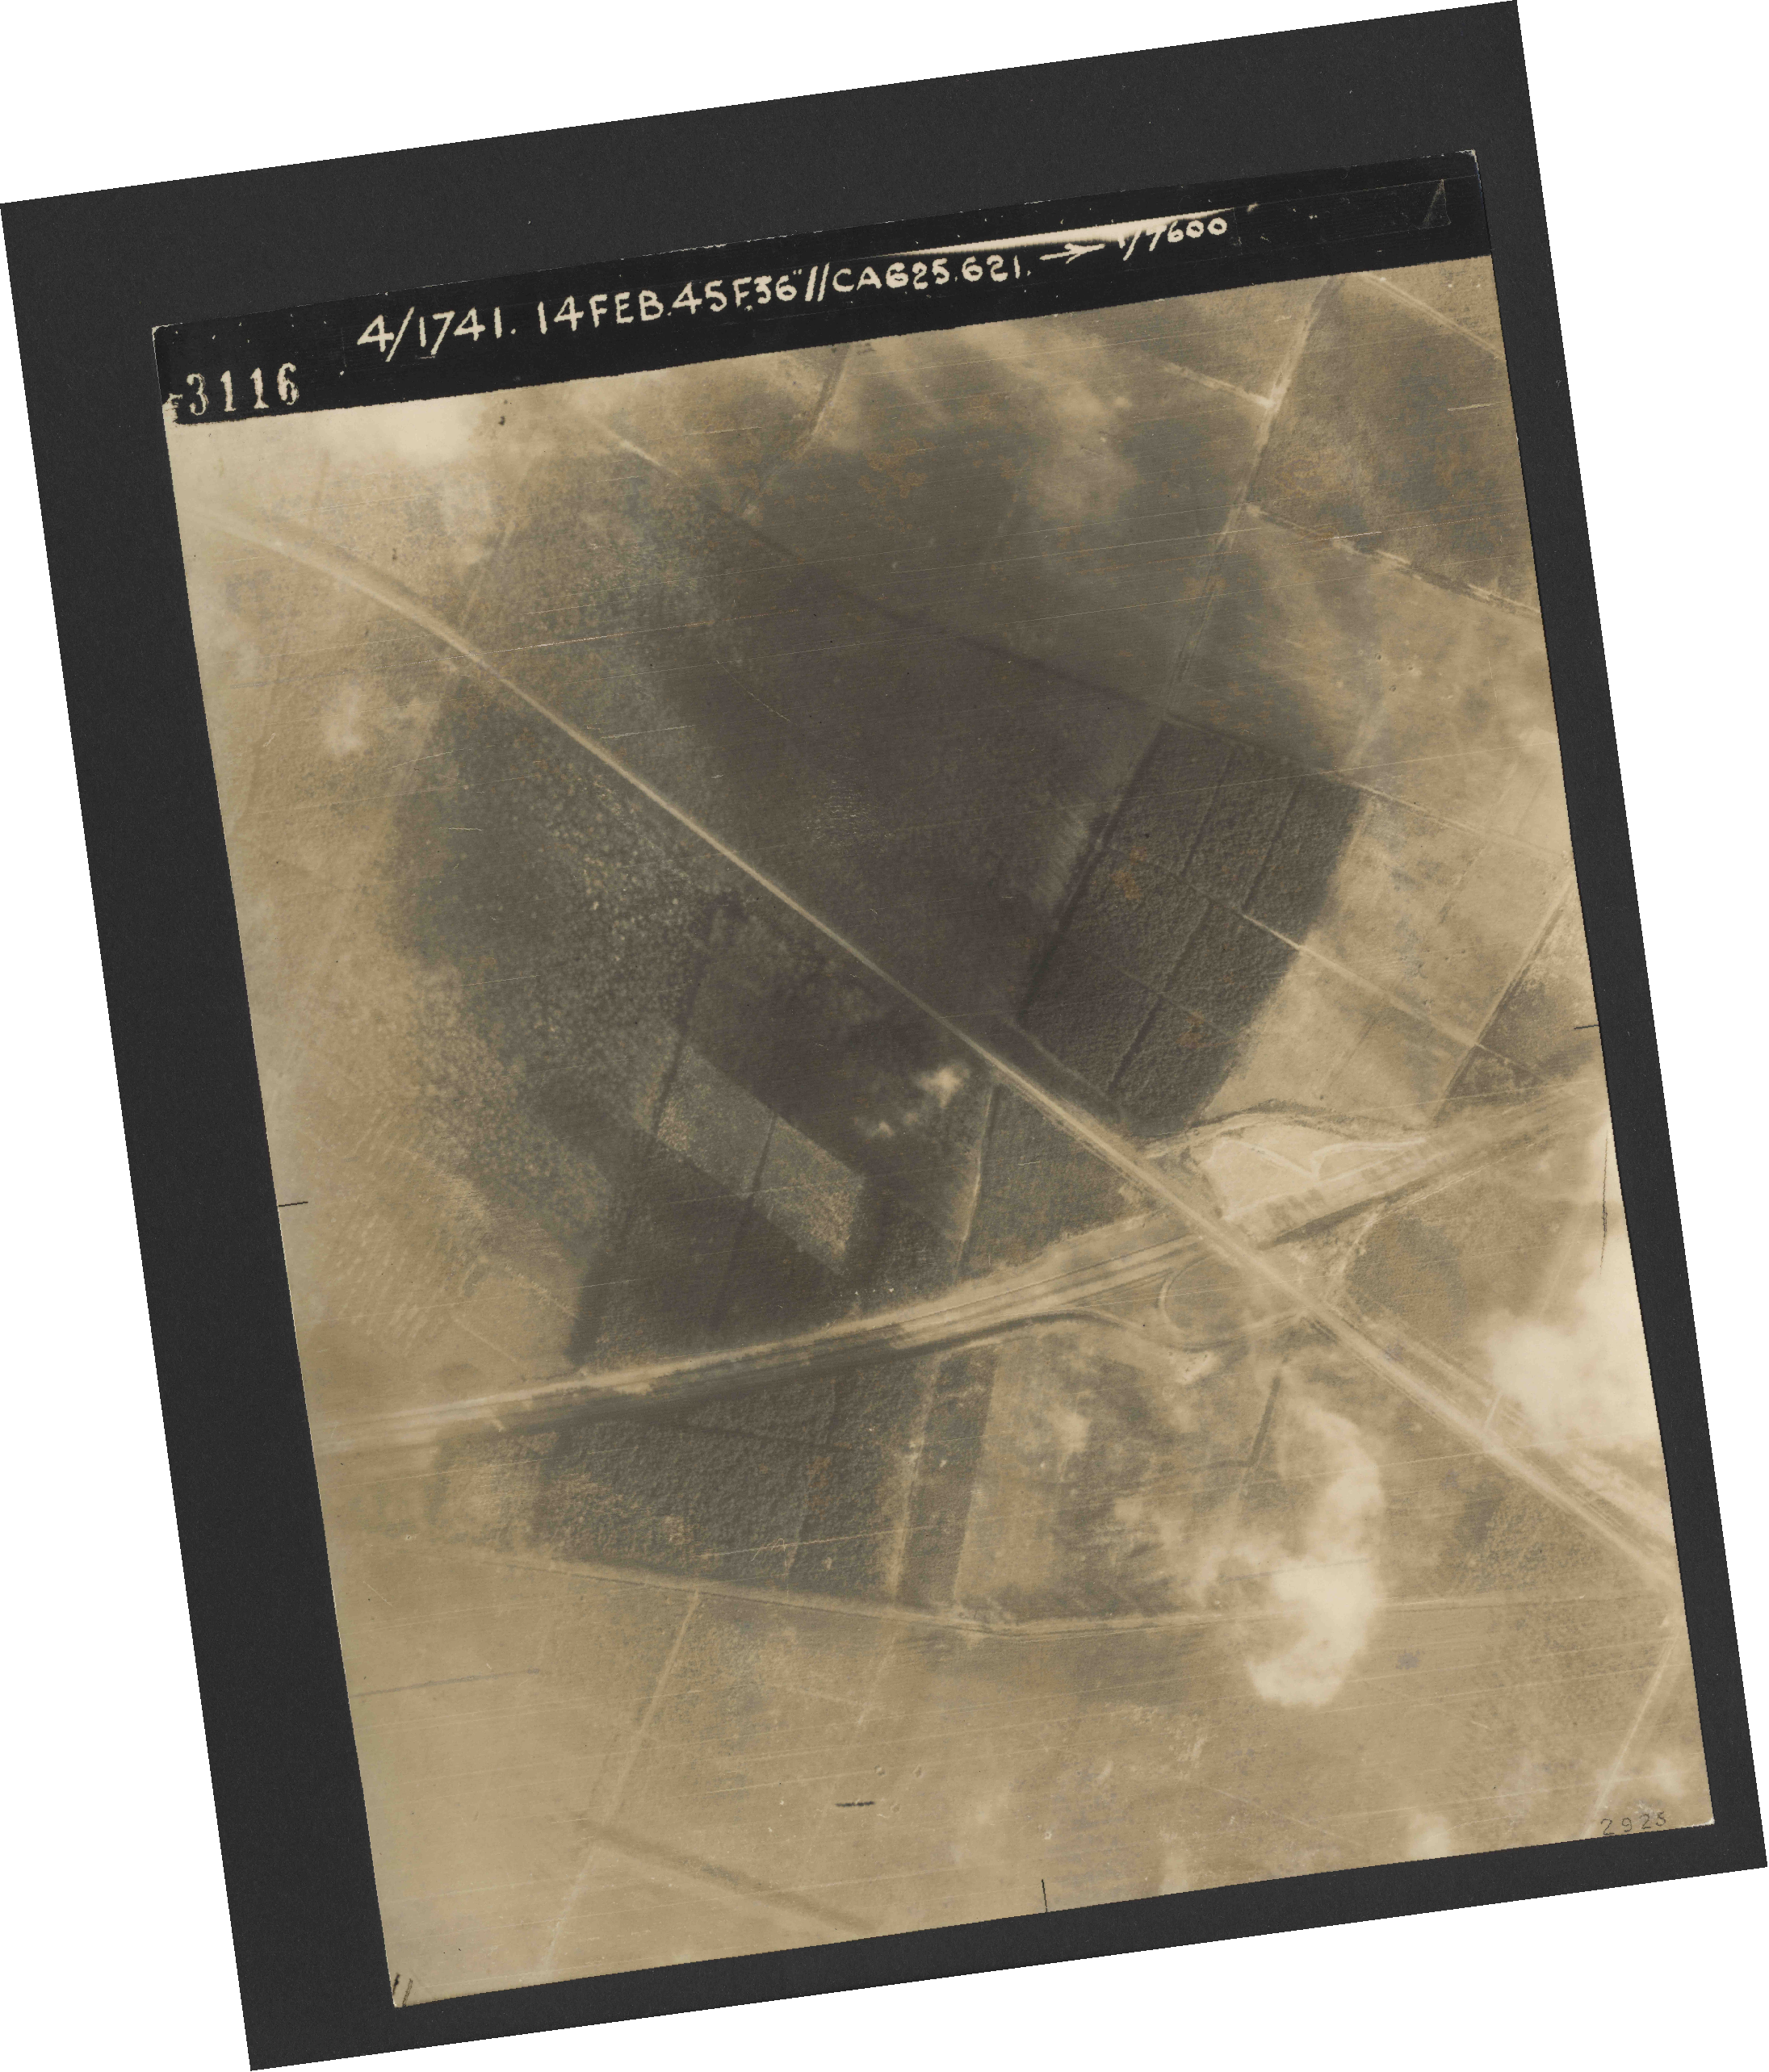 Collection RAF aerial photos 1940-1945 - flight 132, run 01, photo 3116